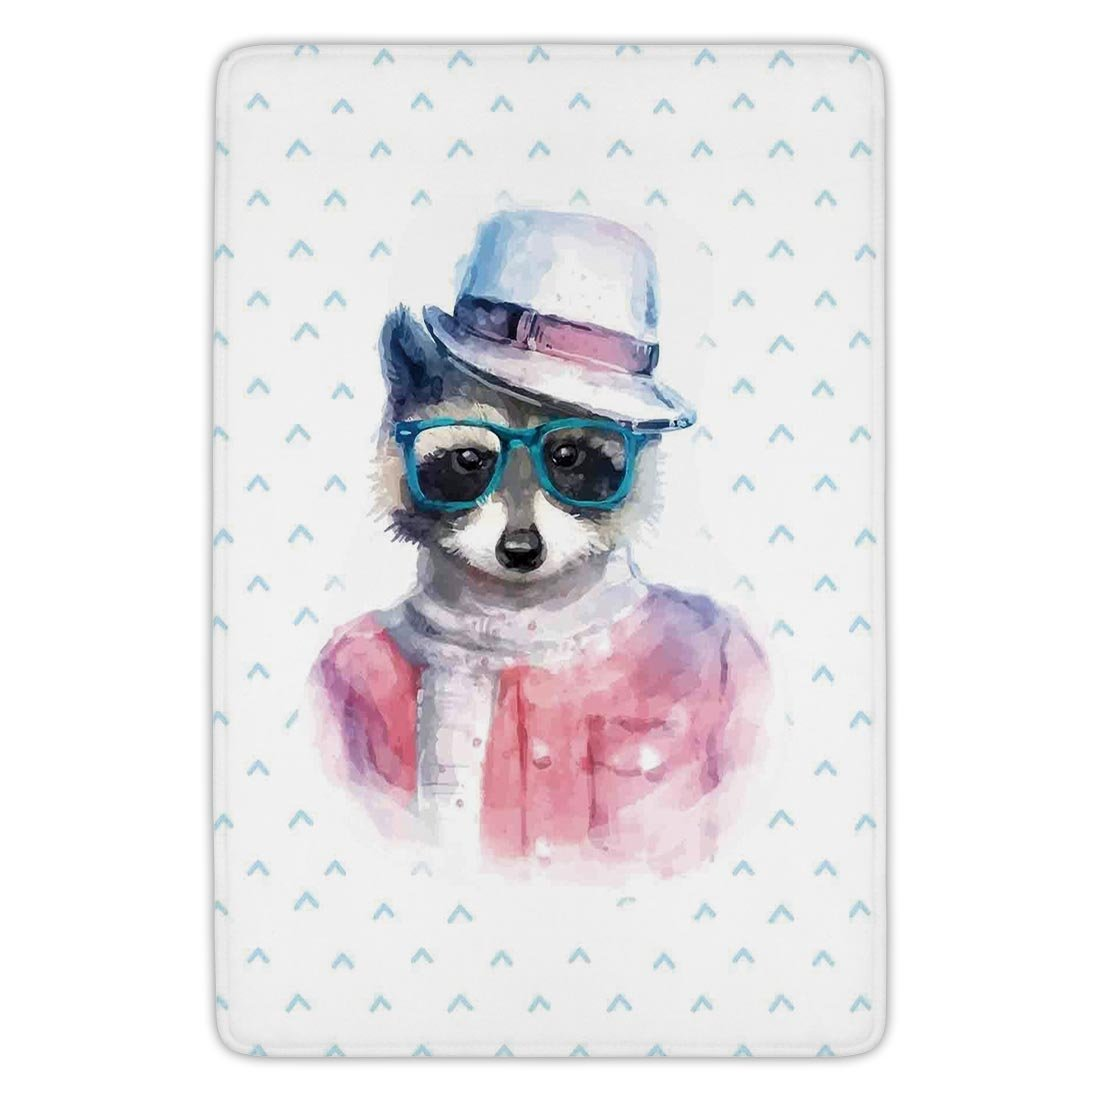 Bathroom Bath Rug Kitchen Floor Mat Carpet,Funny,Retro Hipster Funky Raccoon with Sunglasses Hat Pullover Portrait Animal Humor Theme,Pink Blue,Flannel Microfiber Non-slip Soft Absorbent